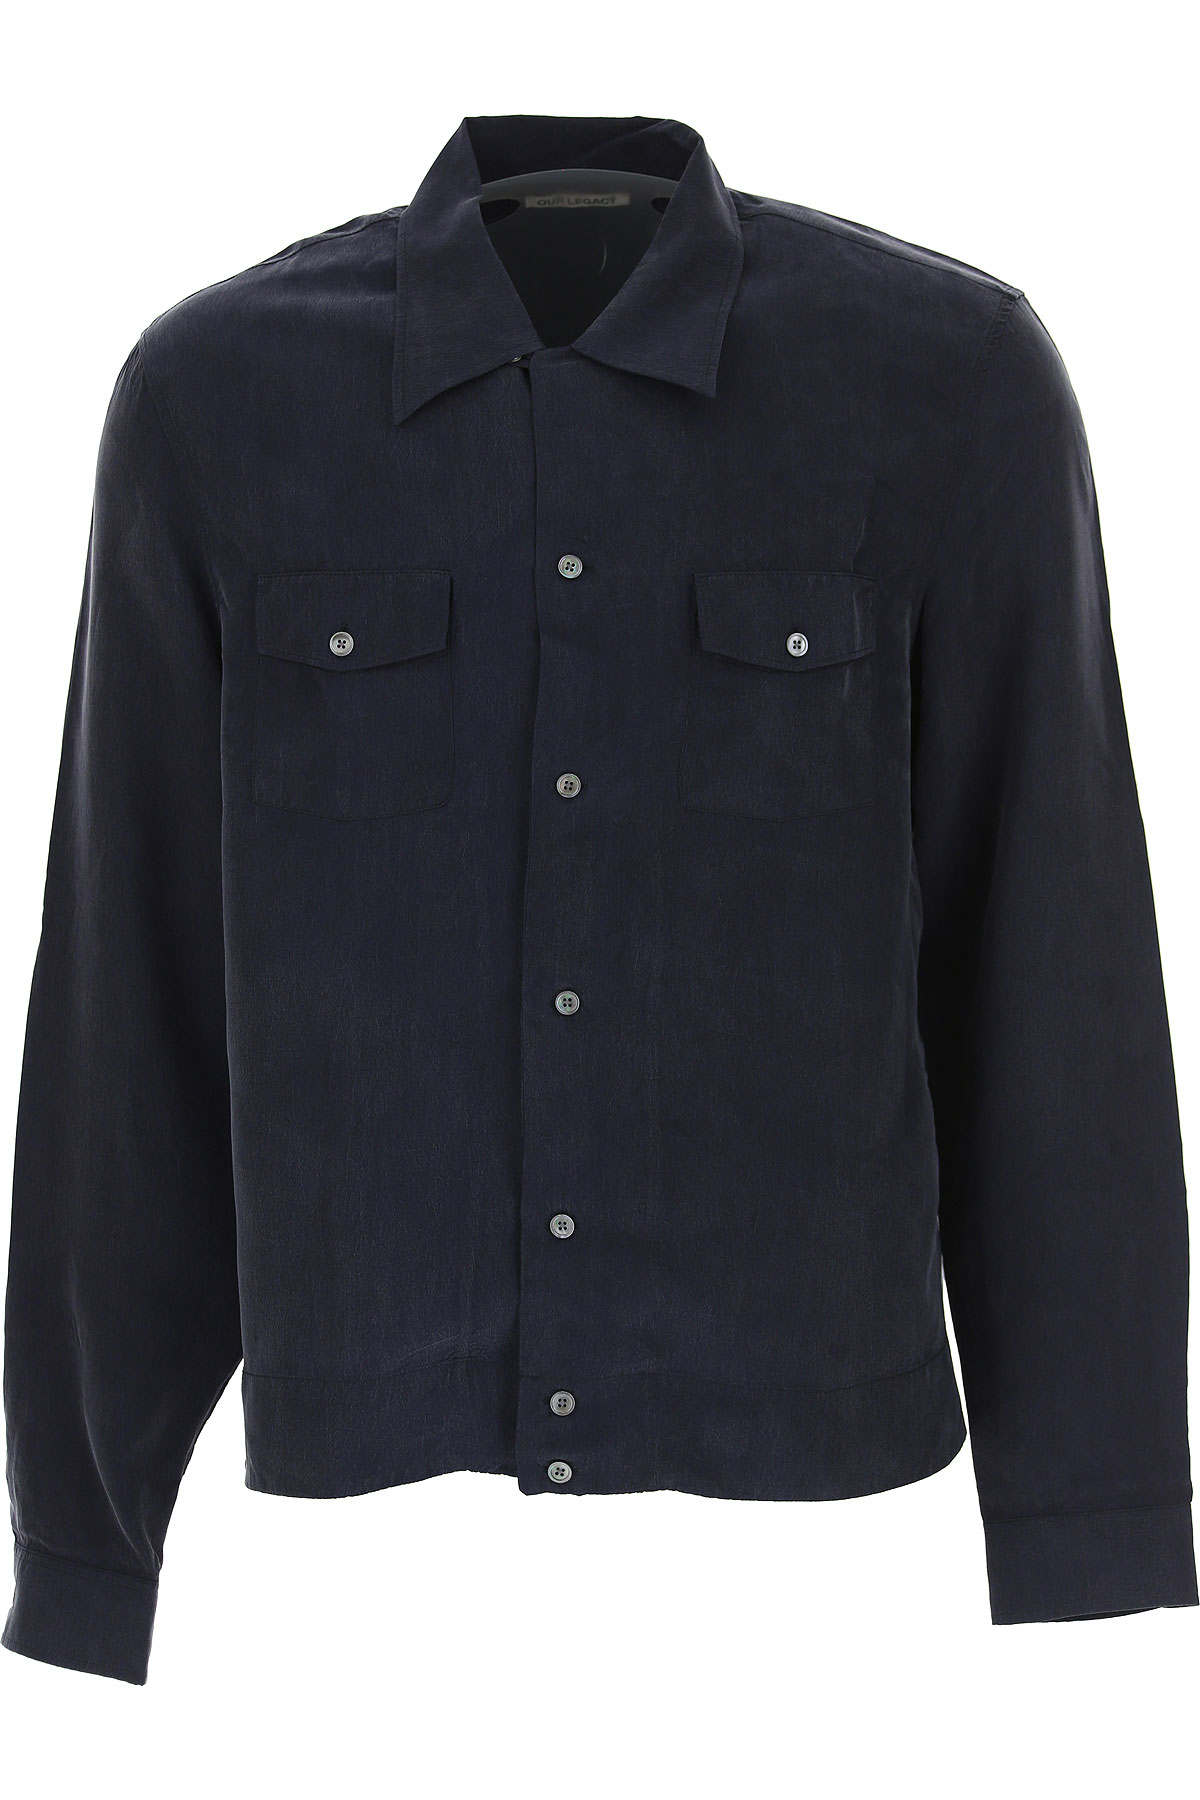 Image of Our Legacy Shirt for Men, Night Blue, cupro, 2017, 30 34